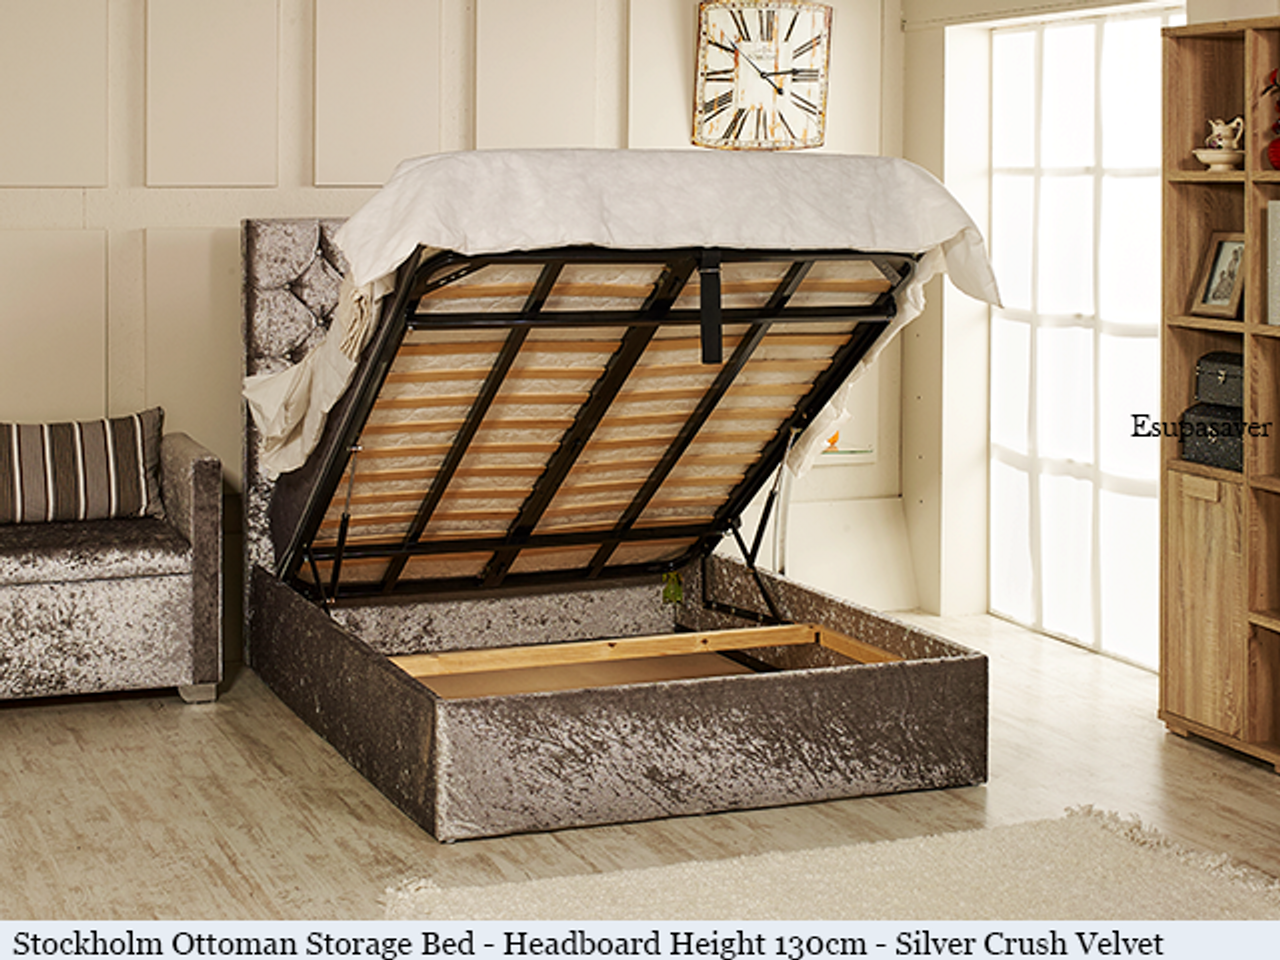 Stockholm gas lift ottoman bed shown in silver crush velvet fabric with diamante buttons